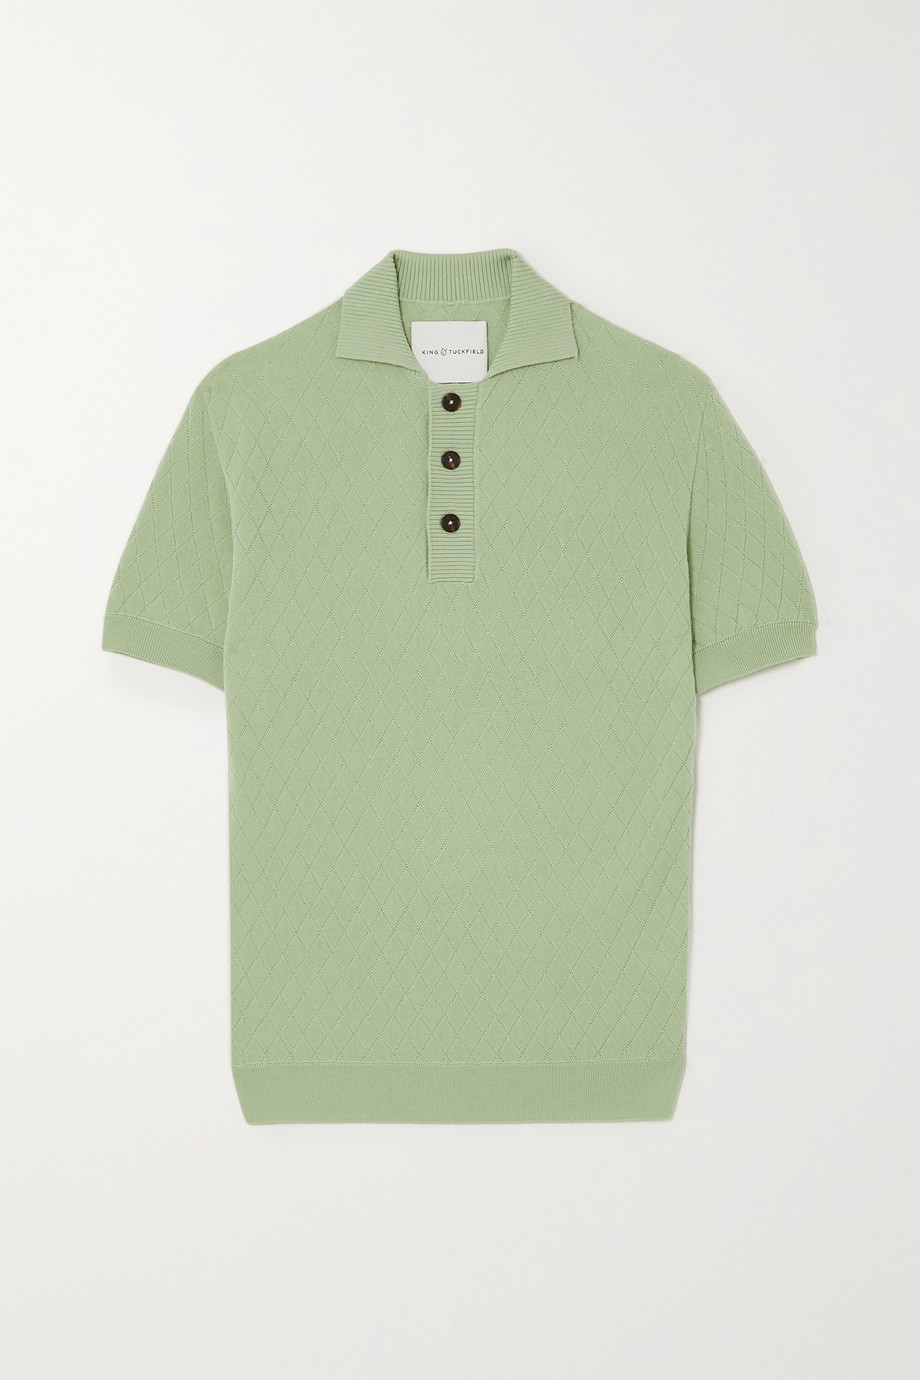 King & Tuckfield Jacquard-knit merino wool polo shirt